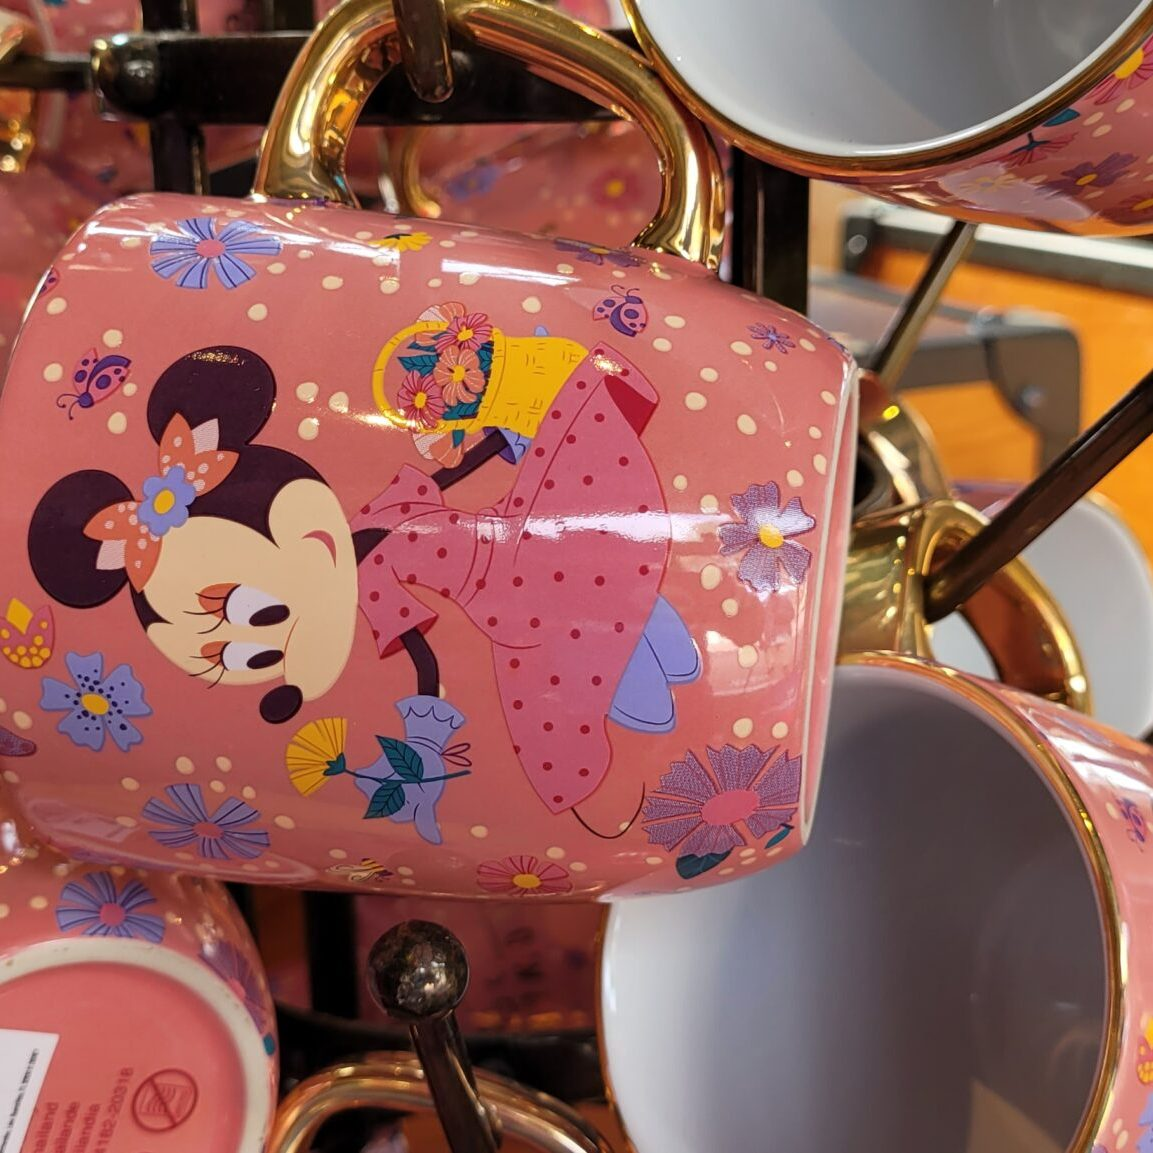 First Look At The 2021 Epcot Flower And Garden Festival Merchandise 19